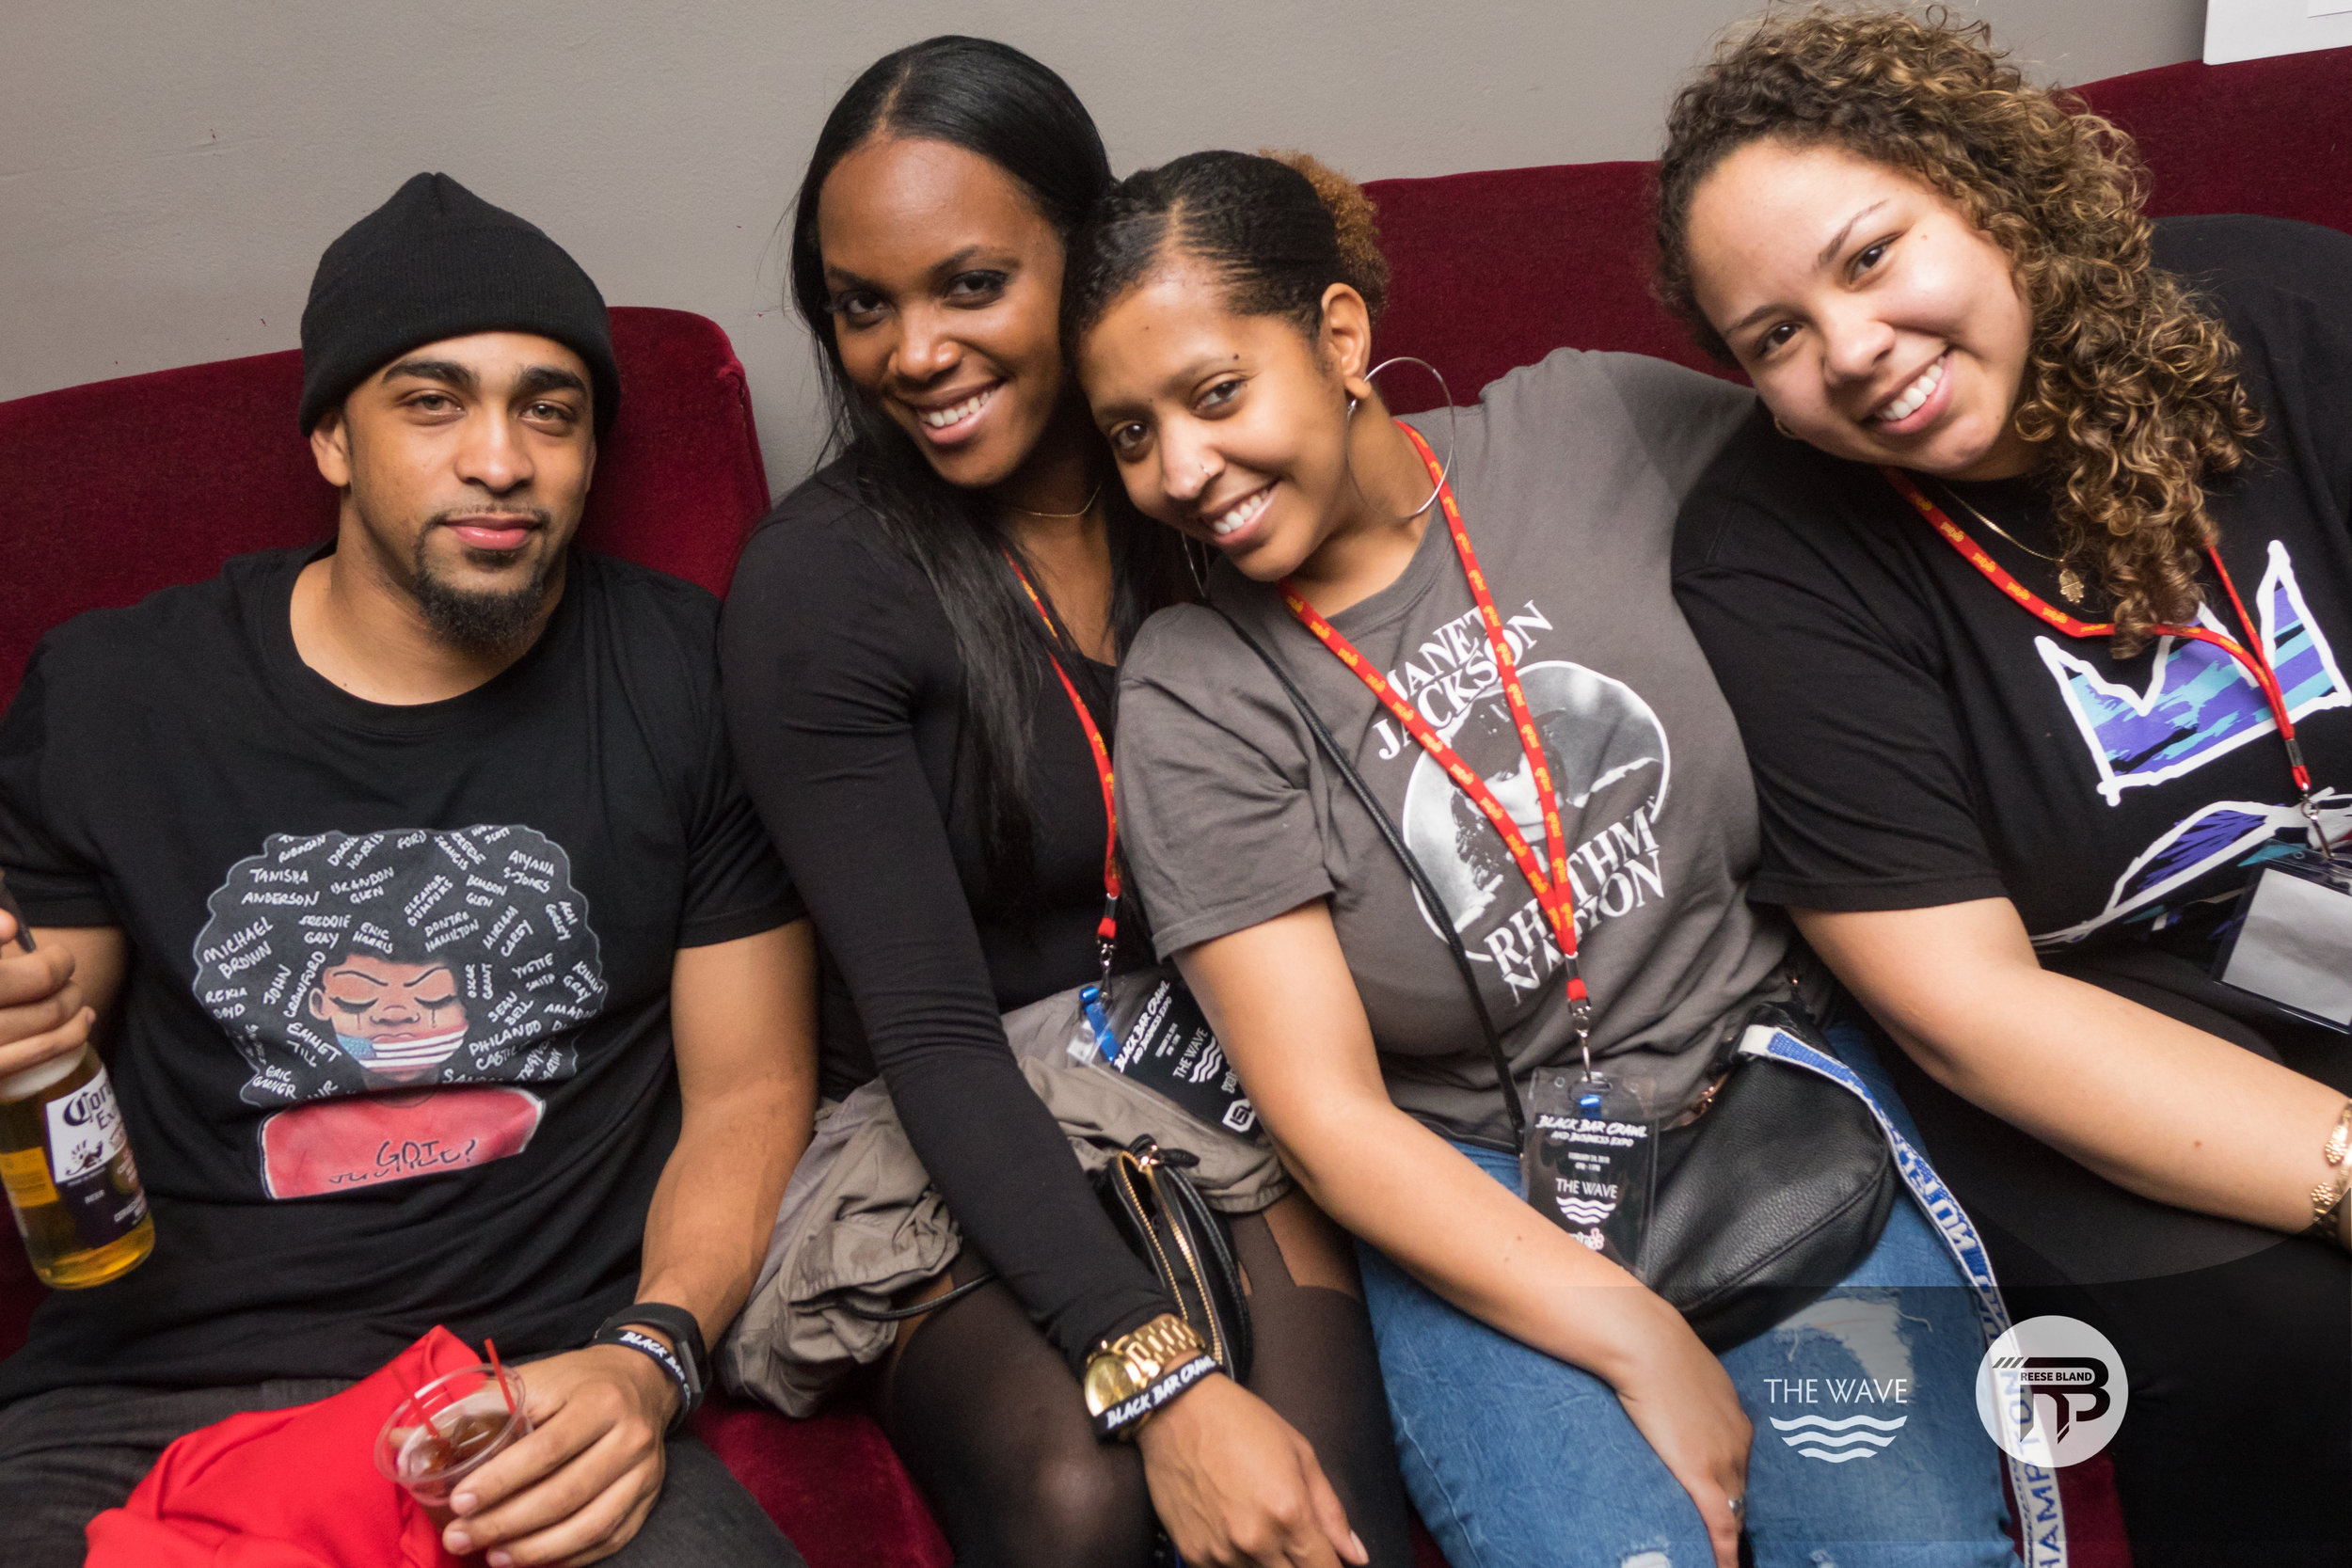 WaveDC-BlackBarCrawl-2-2018-06639.jpg